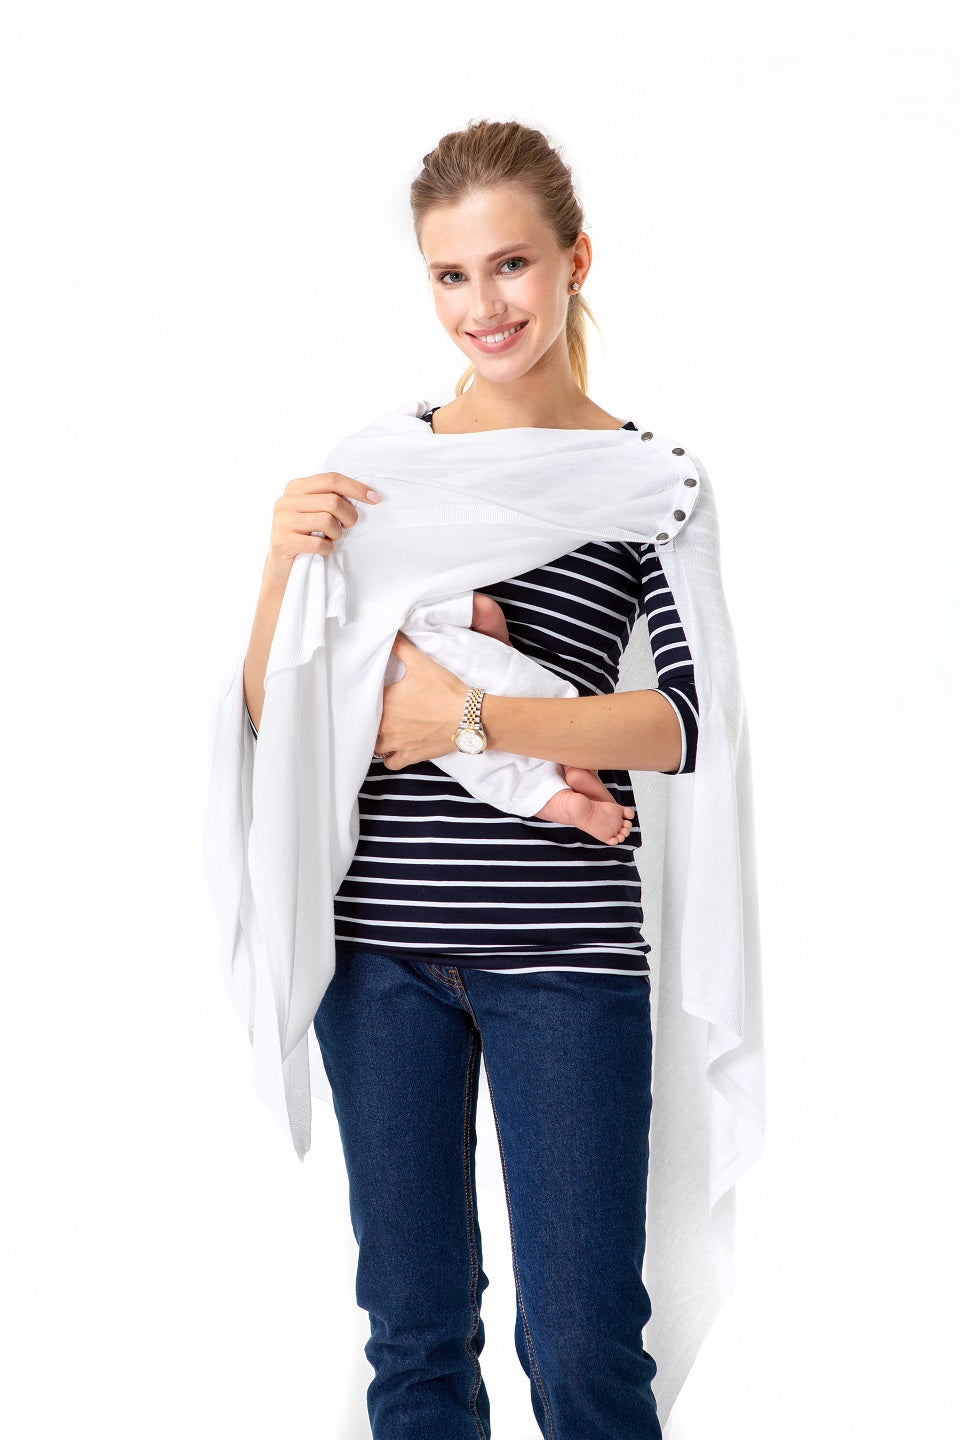 4 in 1 for Pregnancy, Nursing & Beyond Multipurpose Knitwear